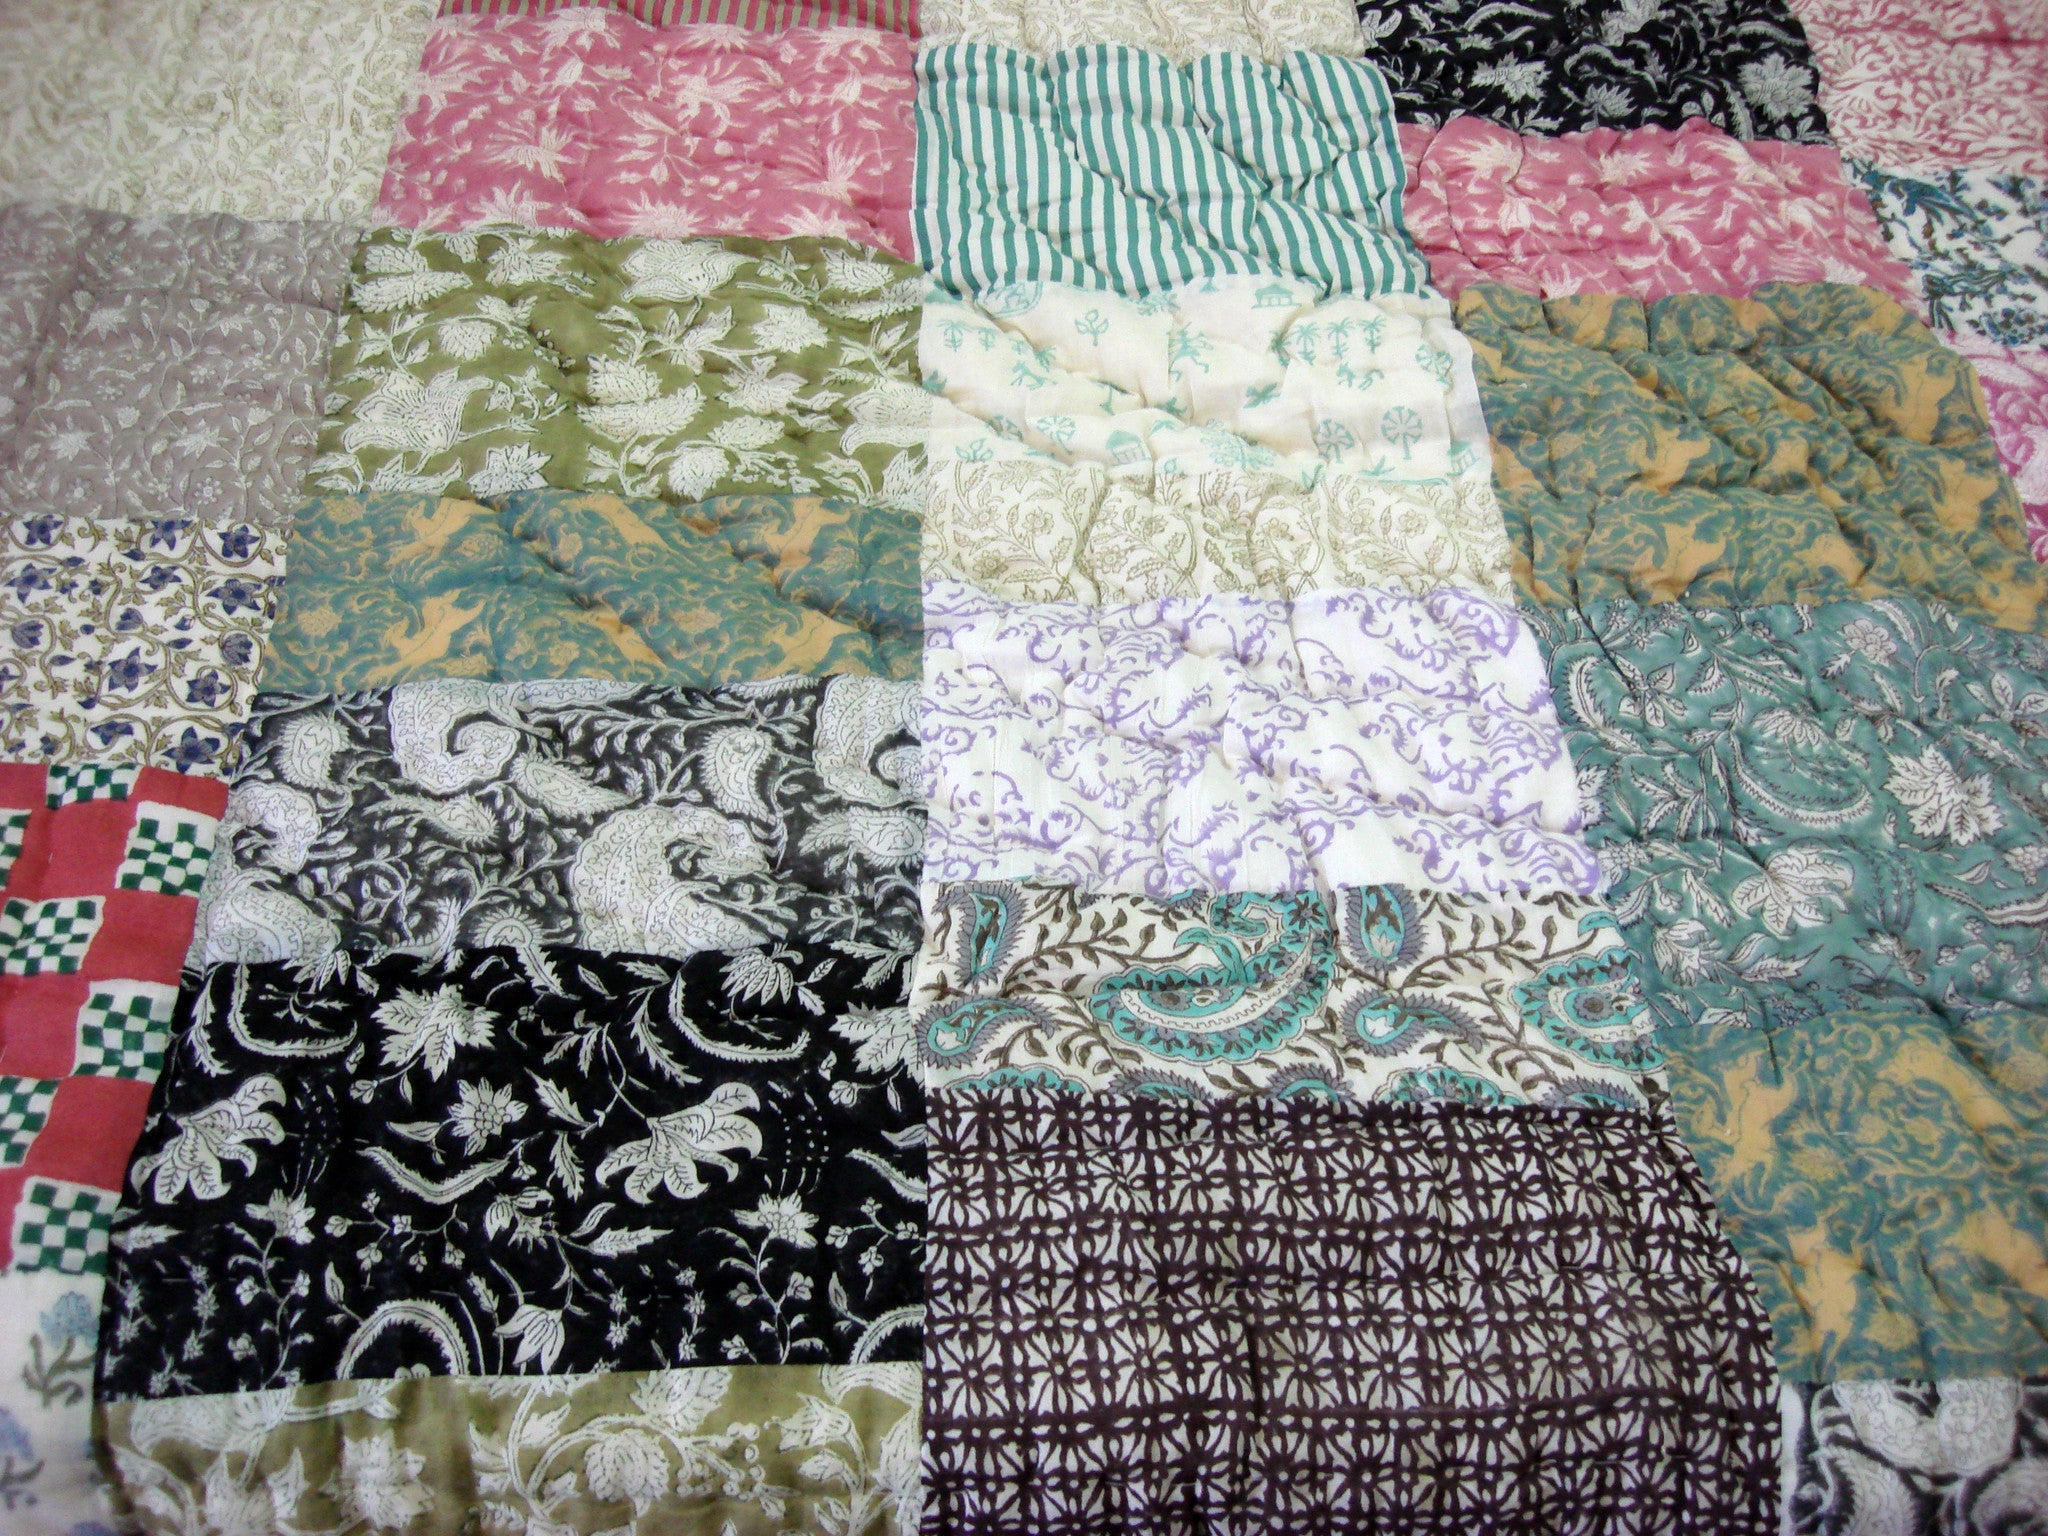 100% Handmade Cotton Patchwork Dark Quilt - Pentagon Crafts